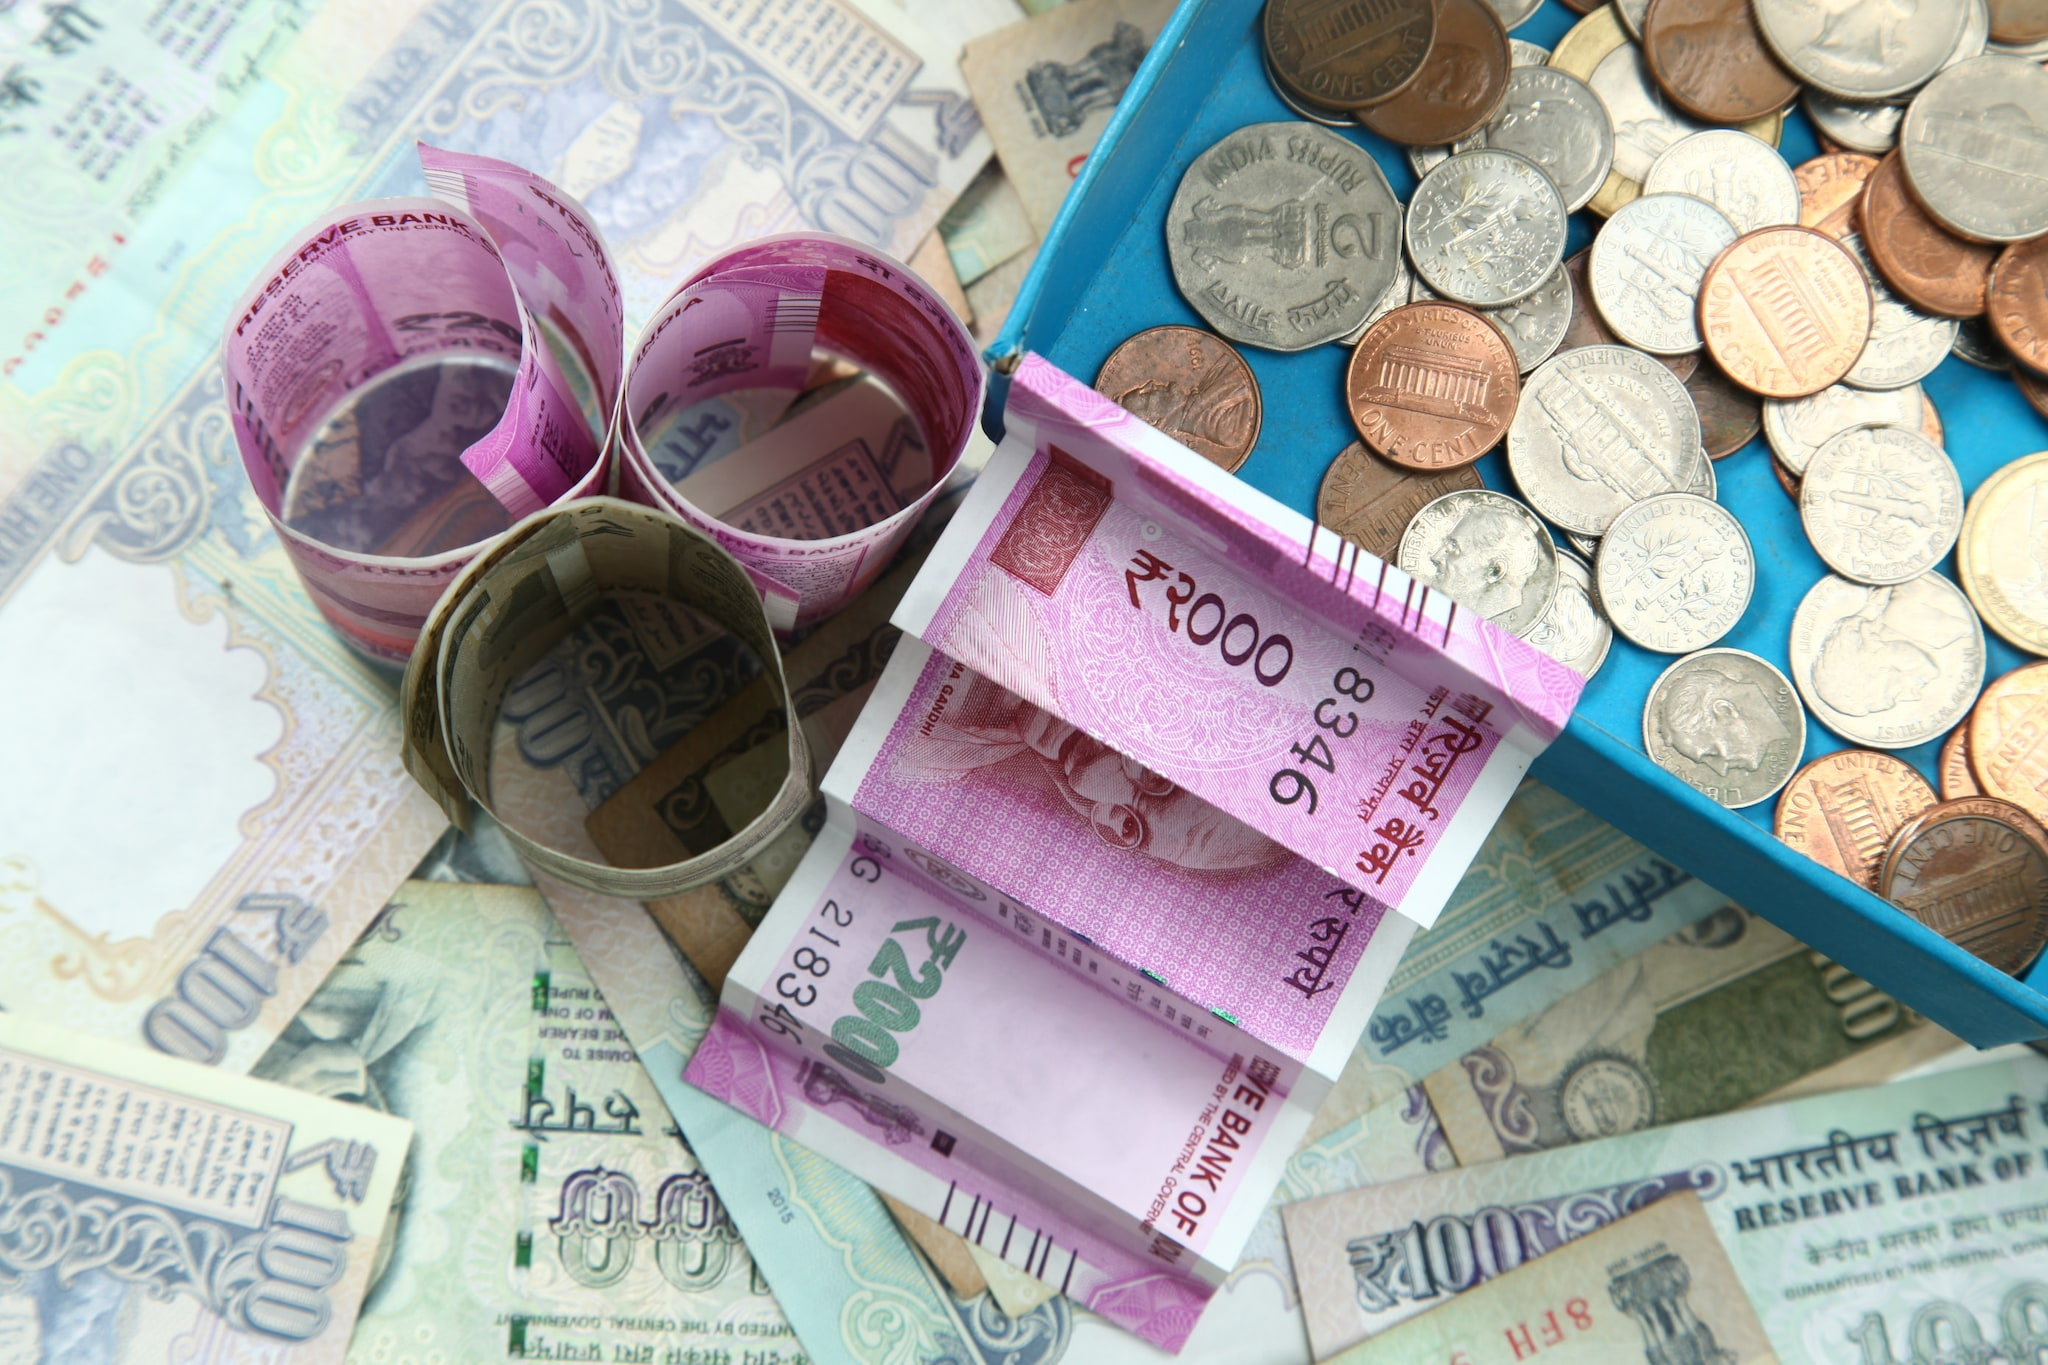 5. Rupee: The rupee closed at 68.82, up by 15 paise against the dollar on Wednesday. Indian financial and money markets are closed on Thursday on account of Holi. Trading will resume on Friday. (Image: Stock Image)